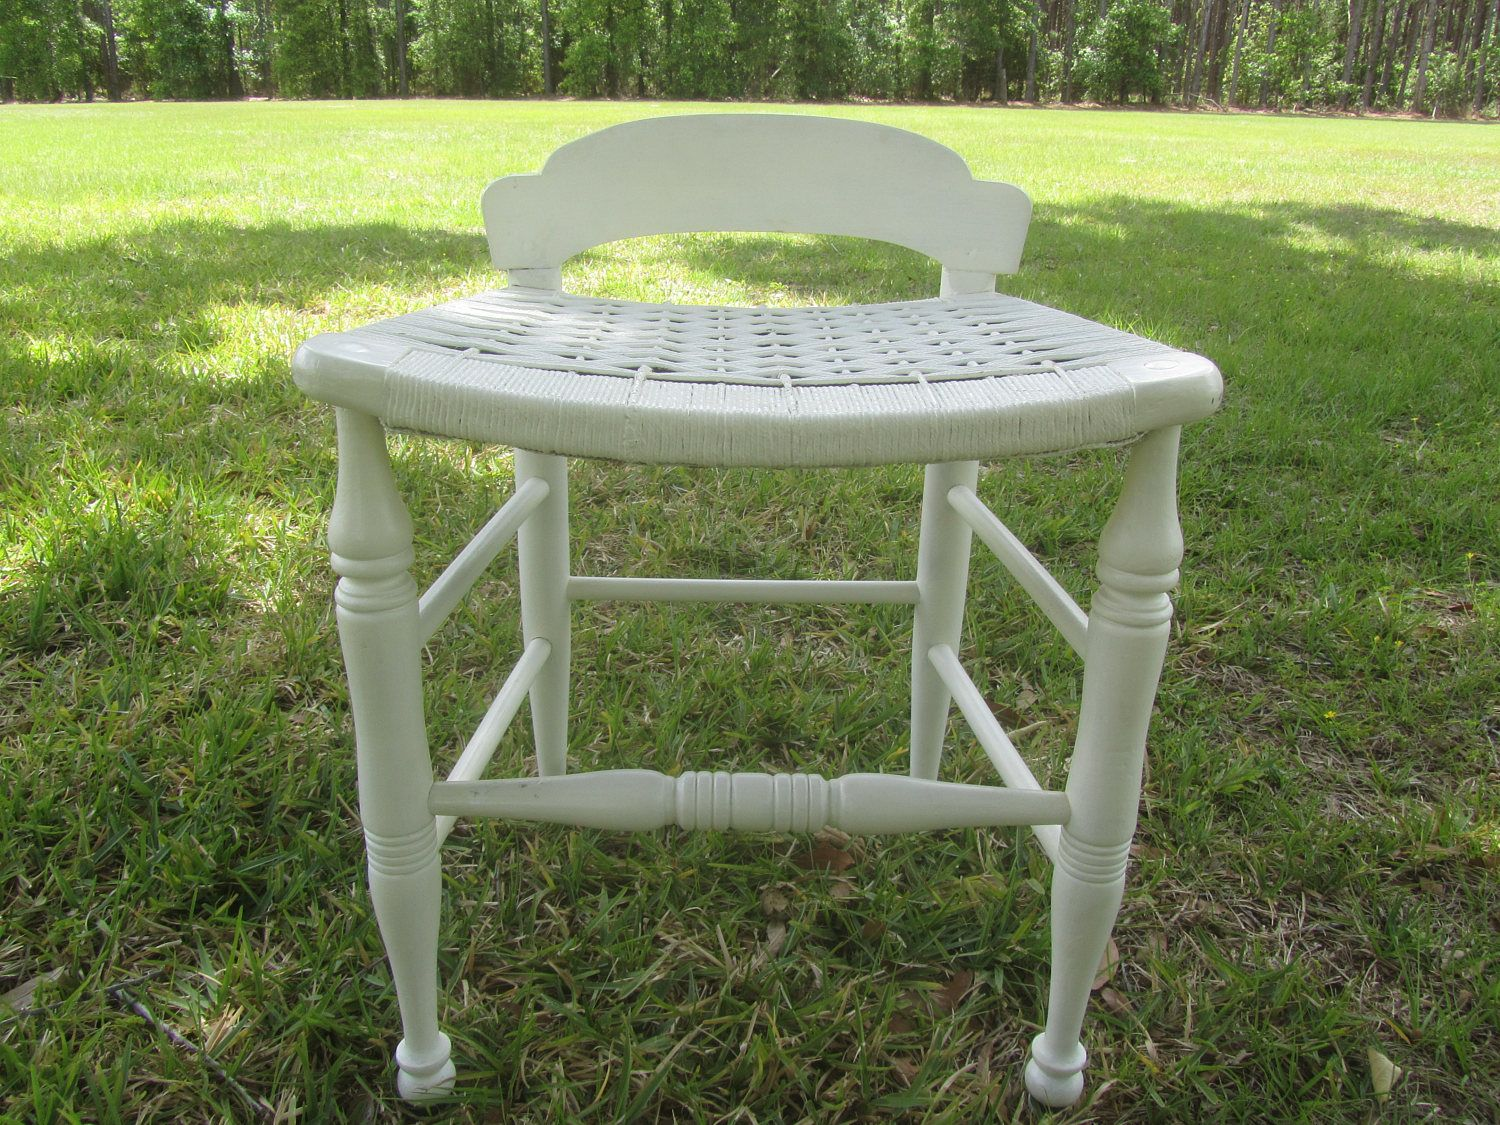 Antique Vanity Chair Wicker Vanity Chair Vanity Bench White Wicker